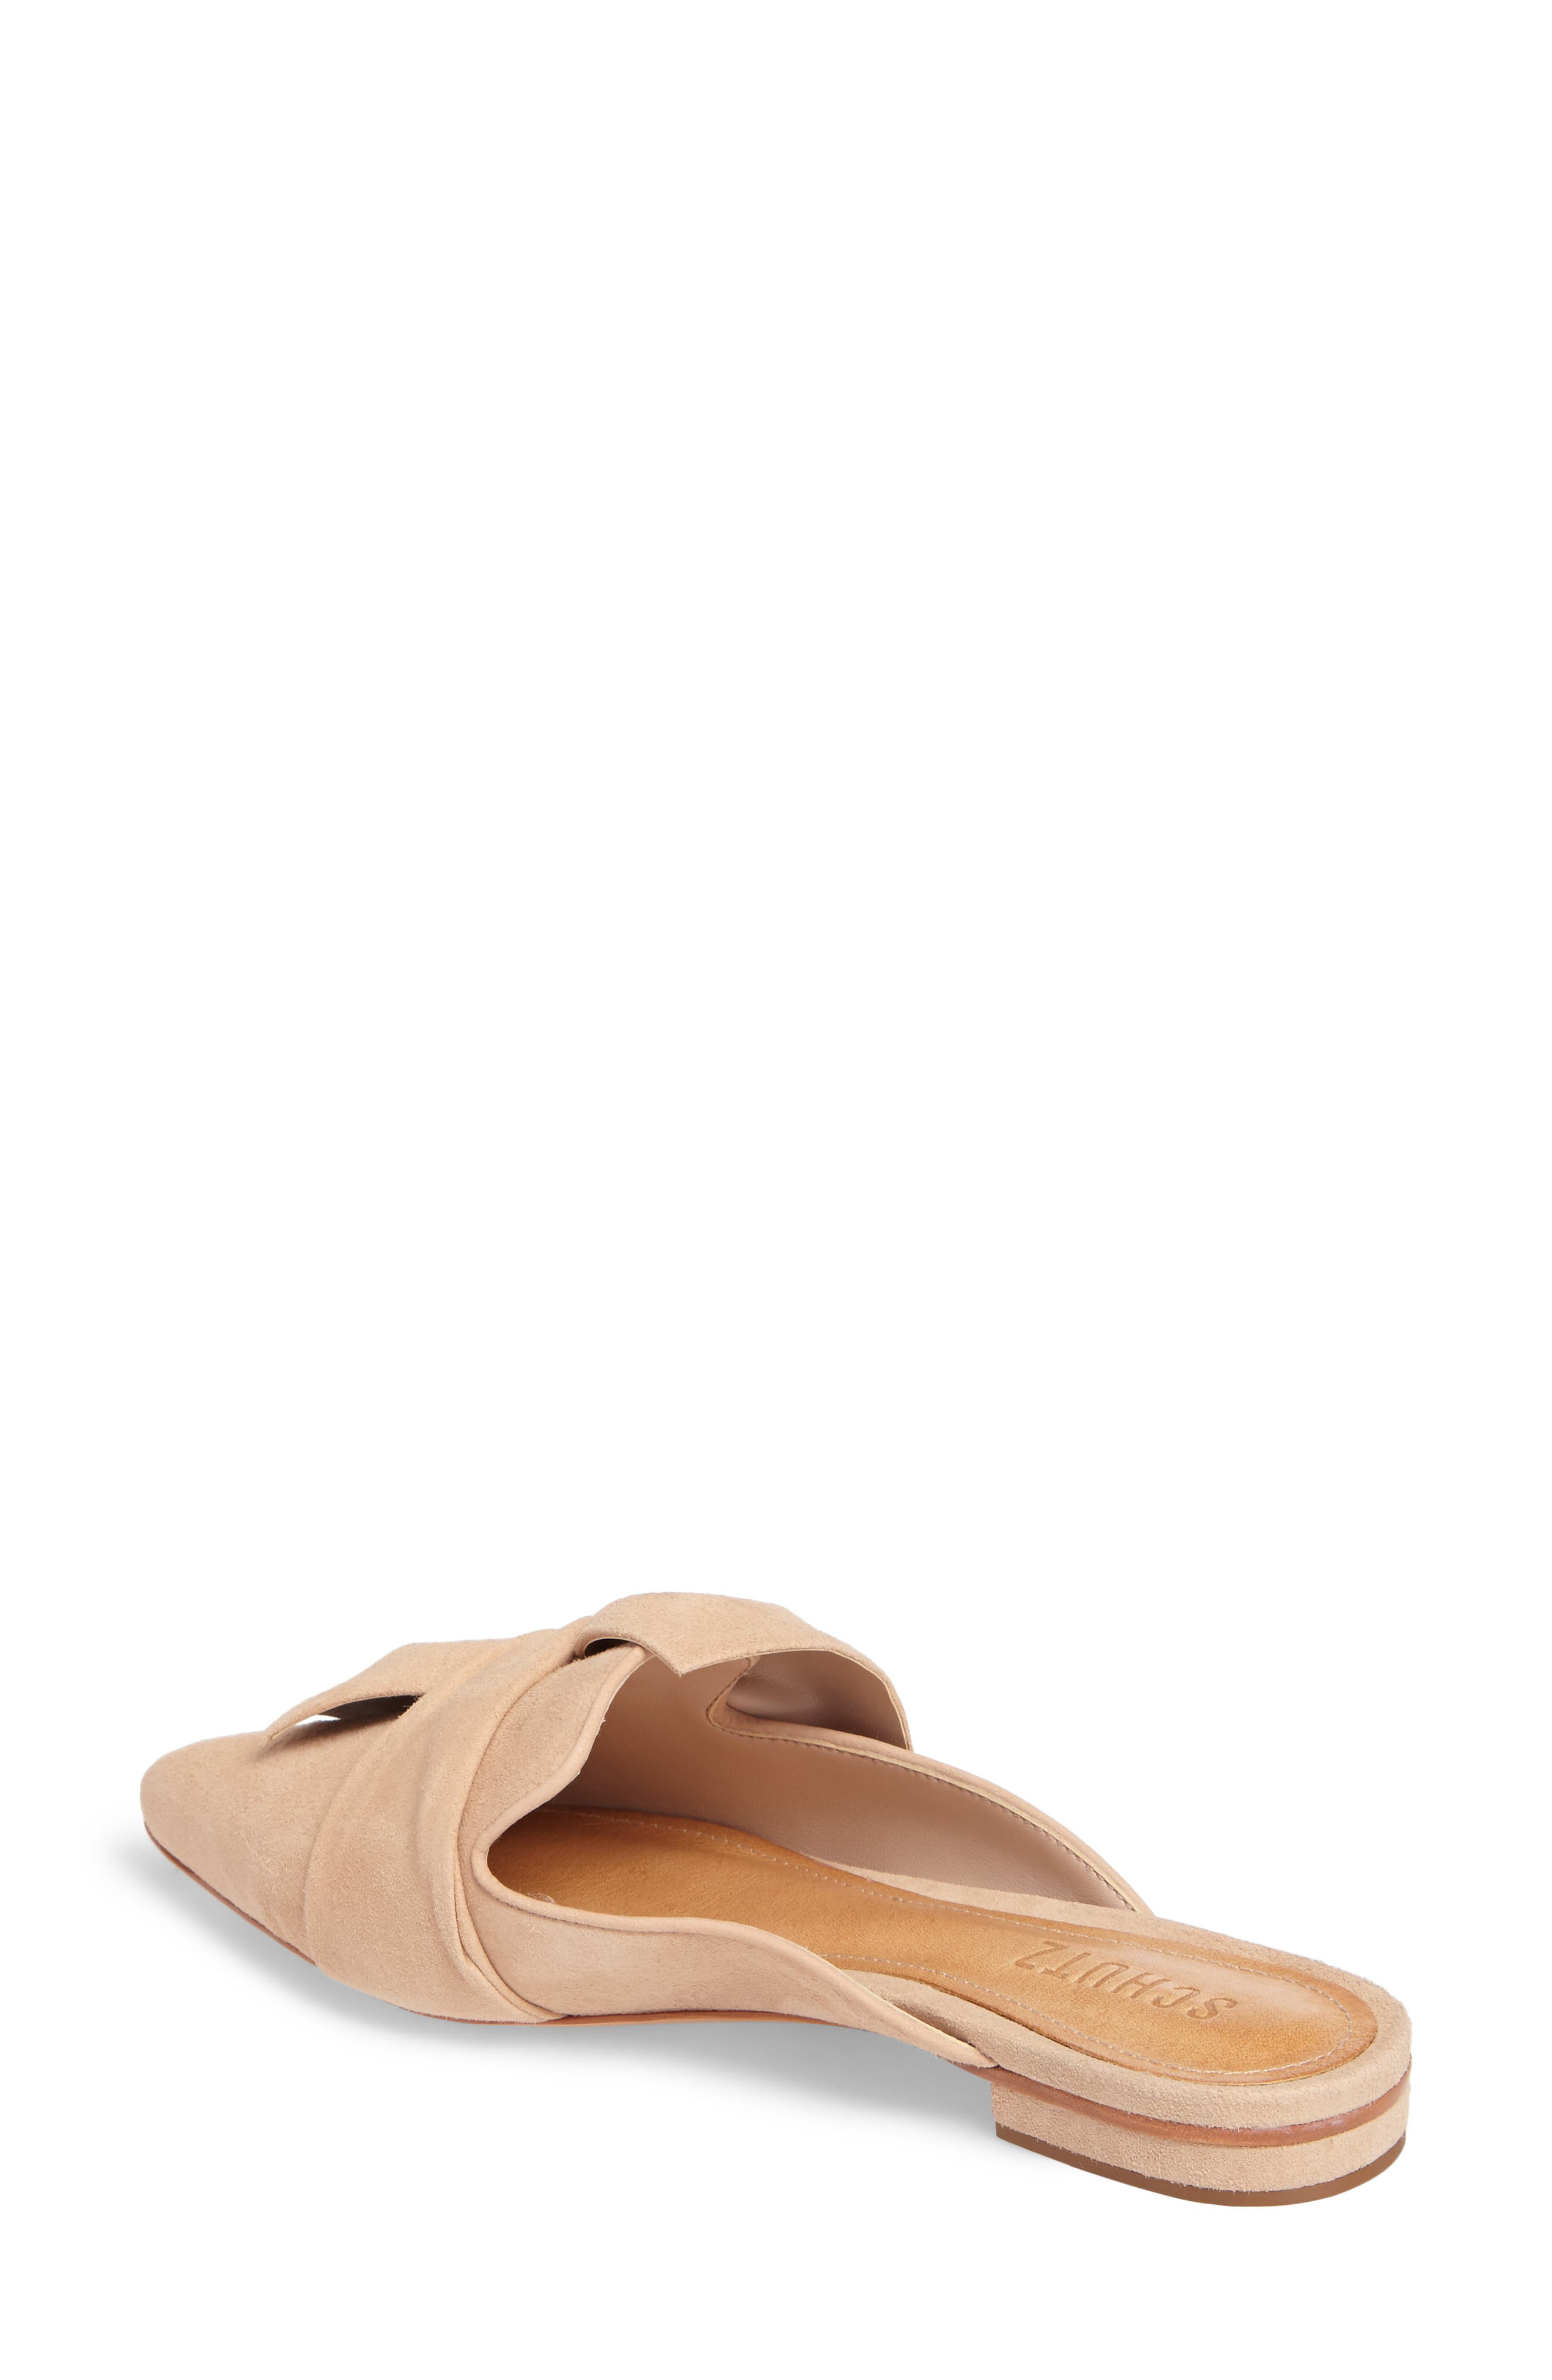 D'Ana Knotted Loafer Mule,                             Alternate thumbnail 2, color,                             Amendoa Nubuck Leather